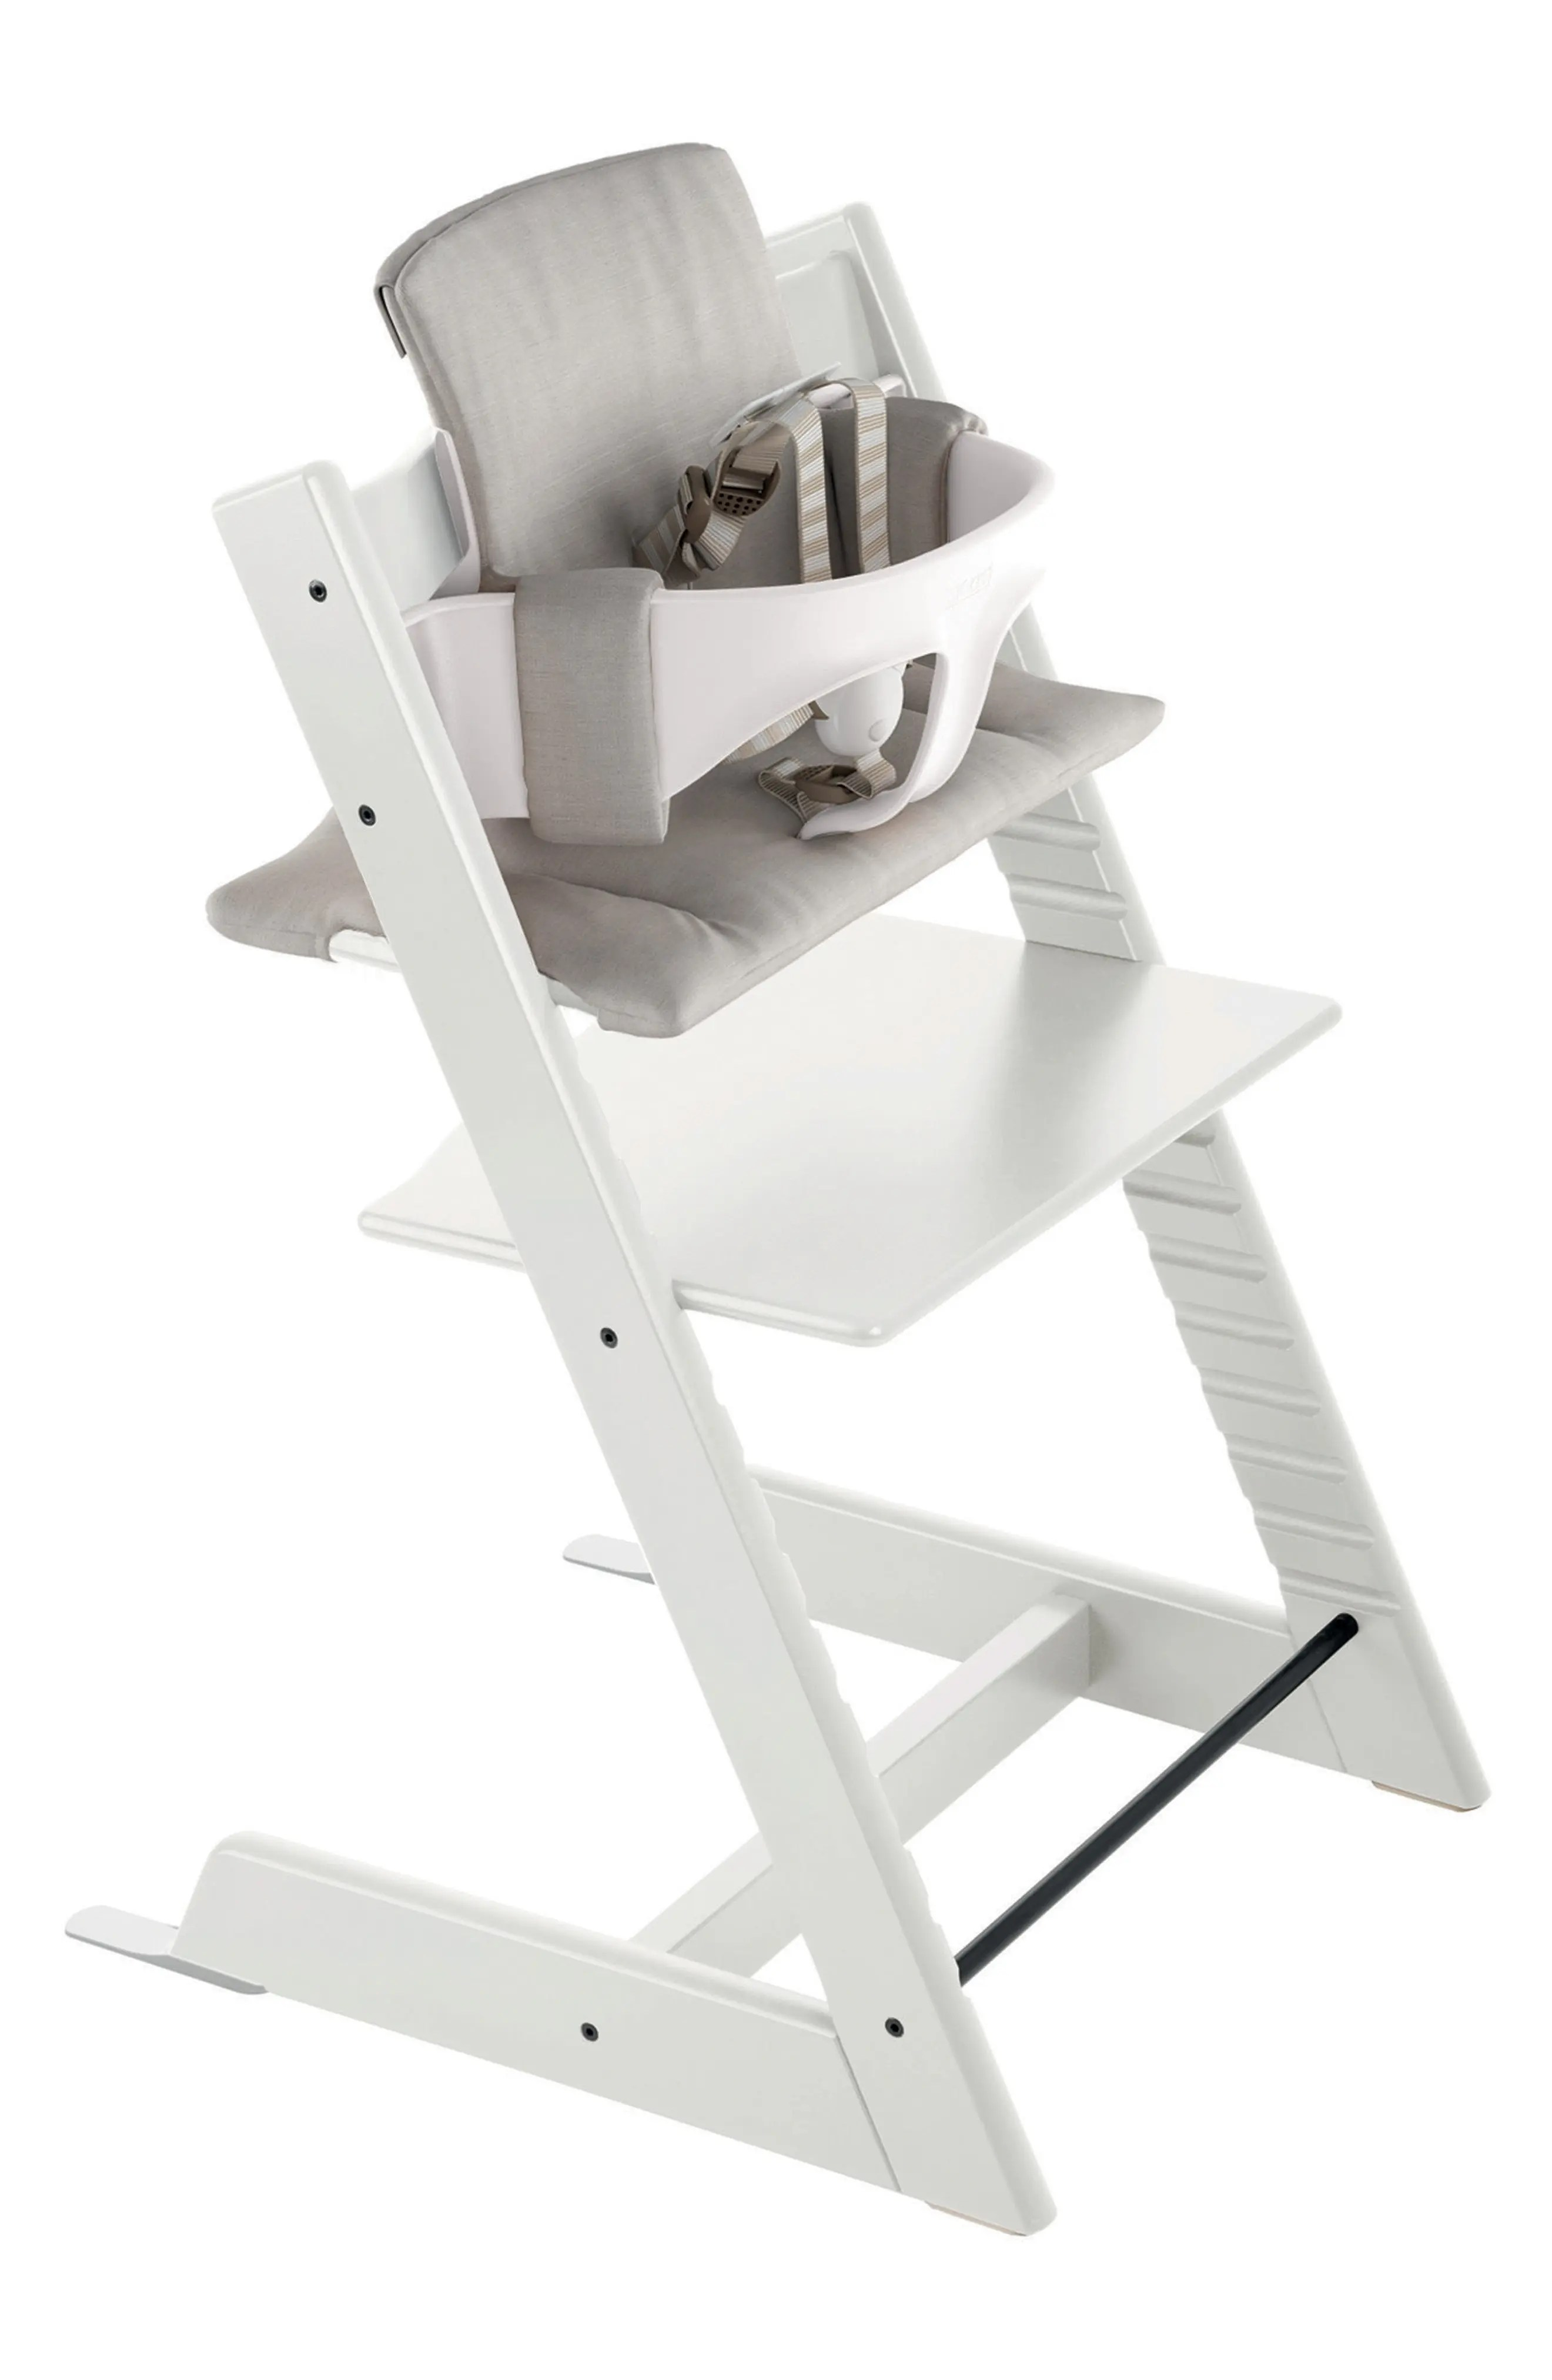 stokke chair harness child s adirondack rocking plans high chairs covers booster seats for tables nordstrom tripp trapp baby set cushion tray exclusive